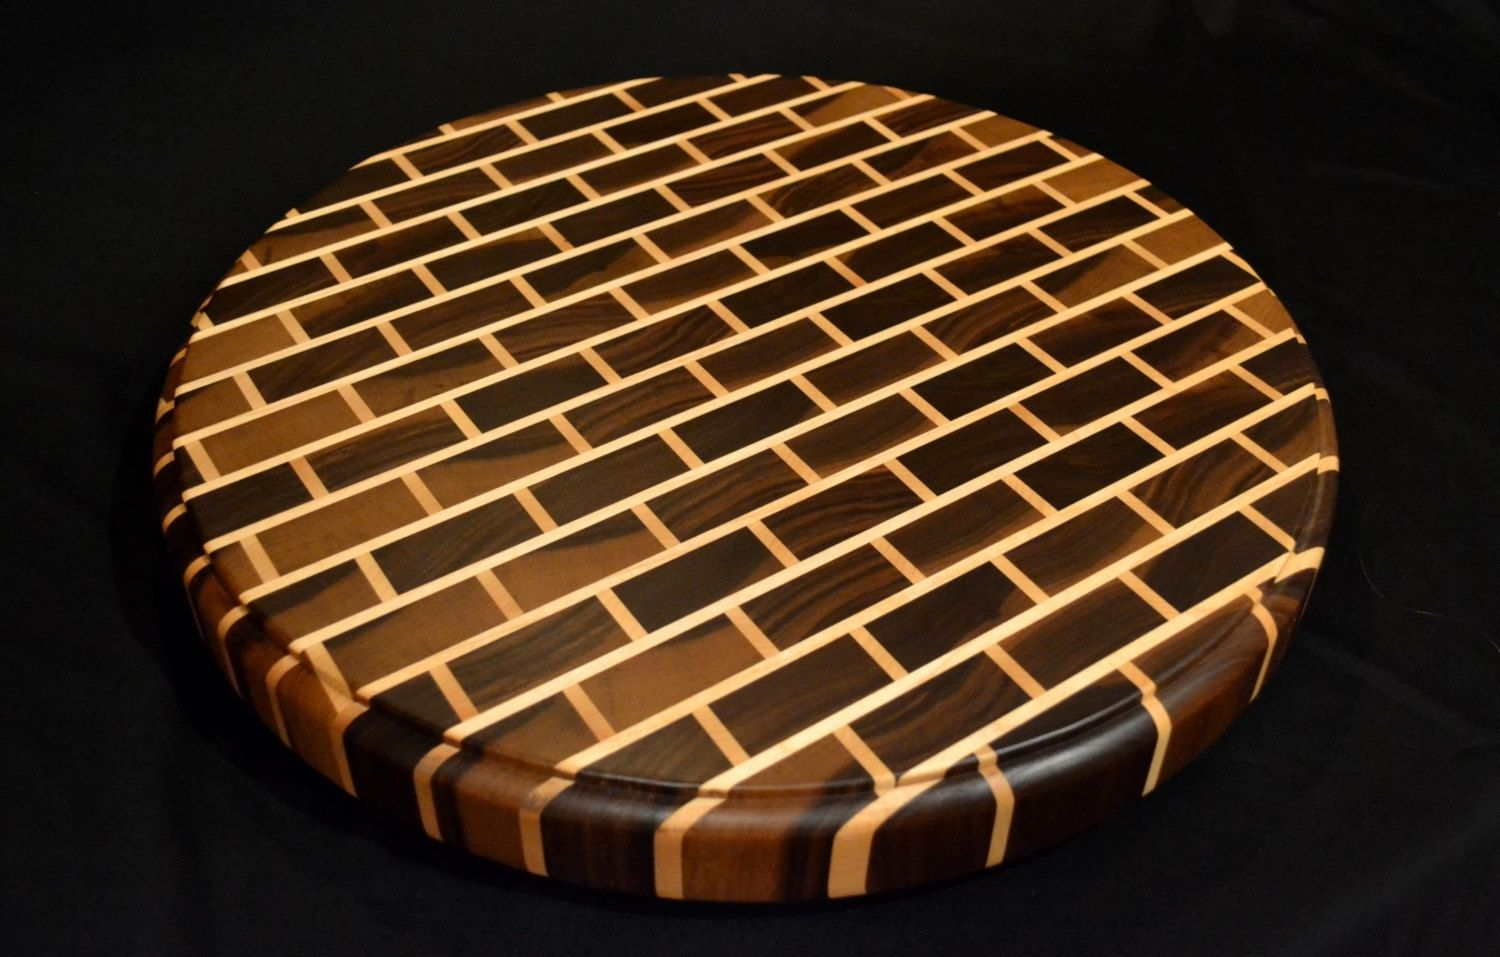 Buy Hand Crafted Signature Black Walnut End Grain Round Cutting Board Made To Order From Magnolia Place Woodworks Custommade Com